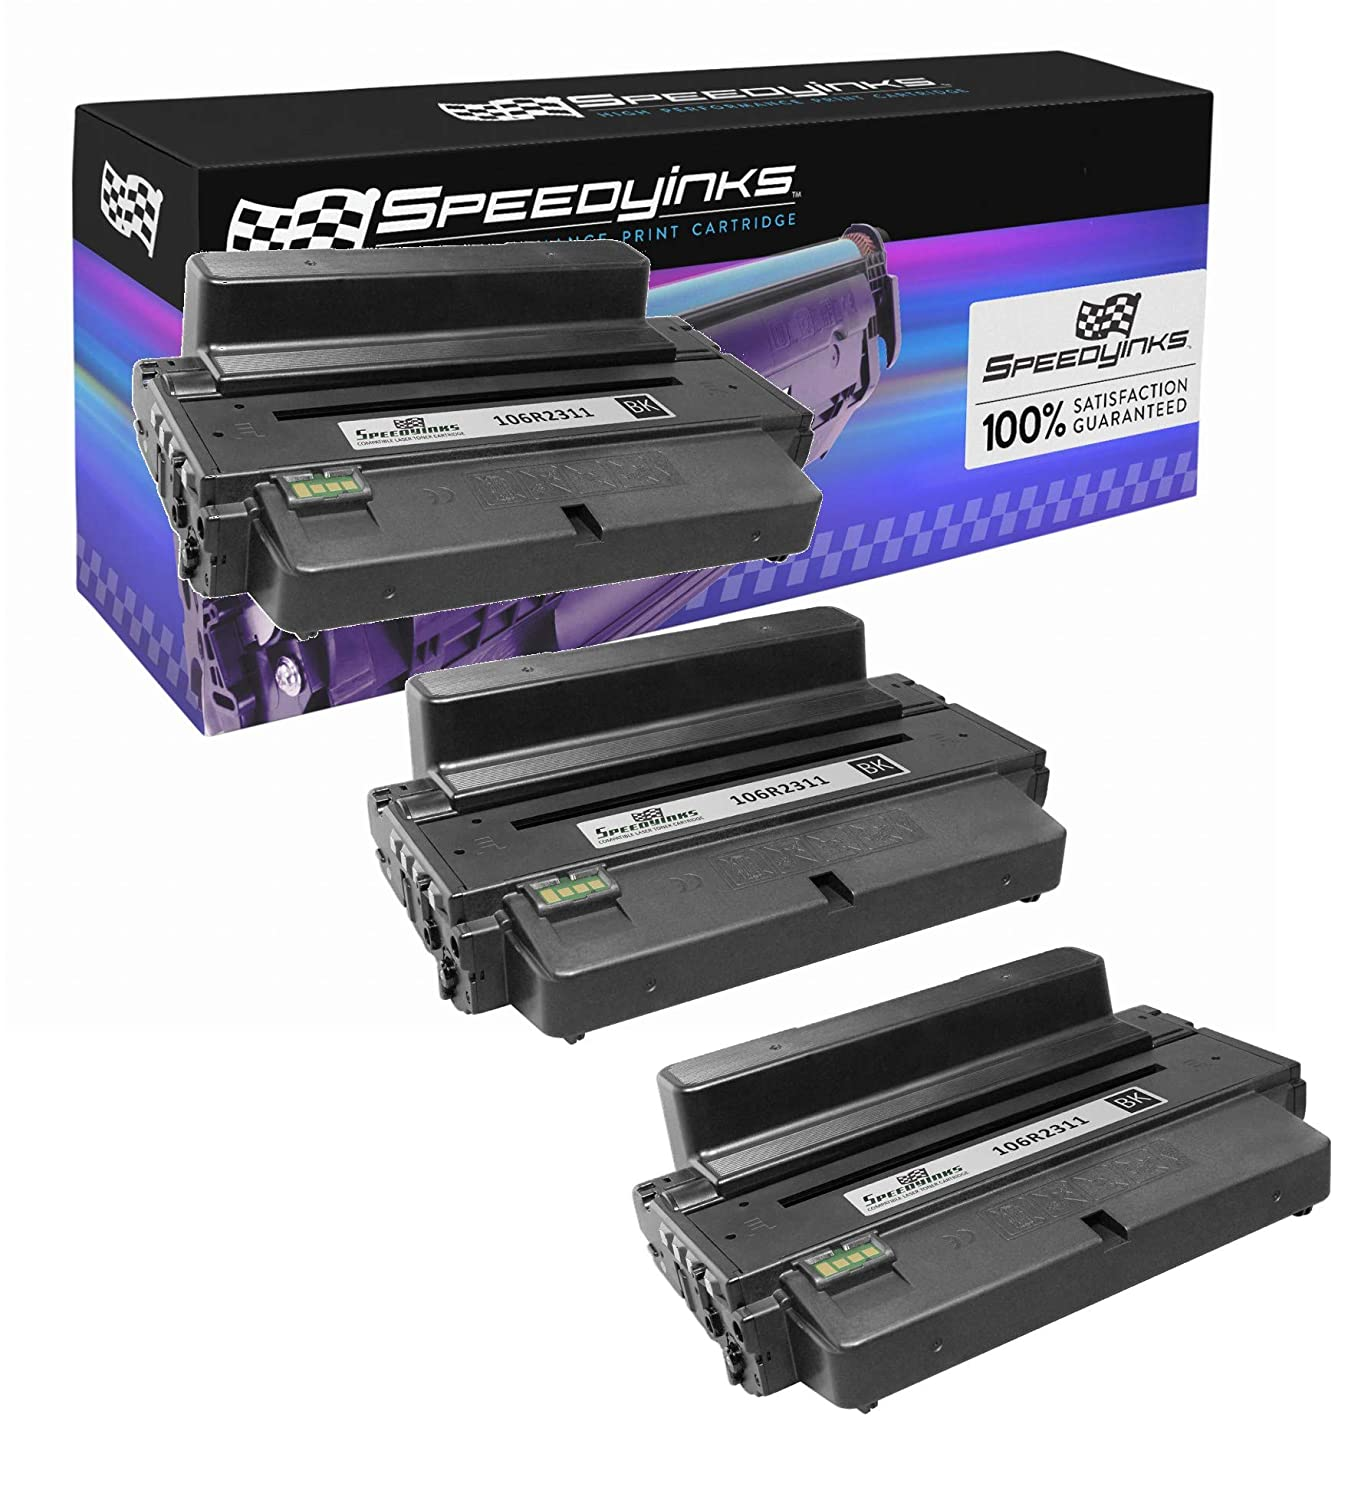 Speedy Inks Compatible Toner Cartridge Replacement for Xerox 3325/3315  106R02311(Black, 3-Pack)